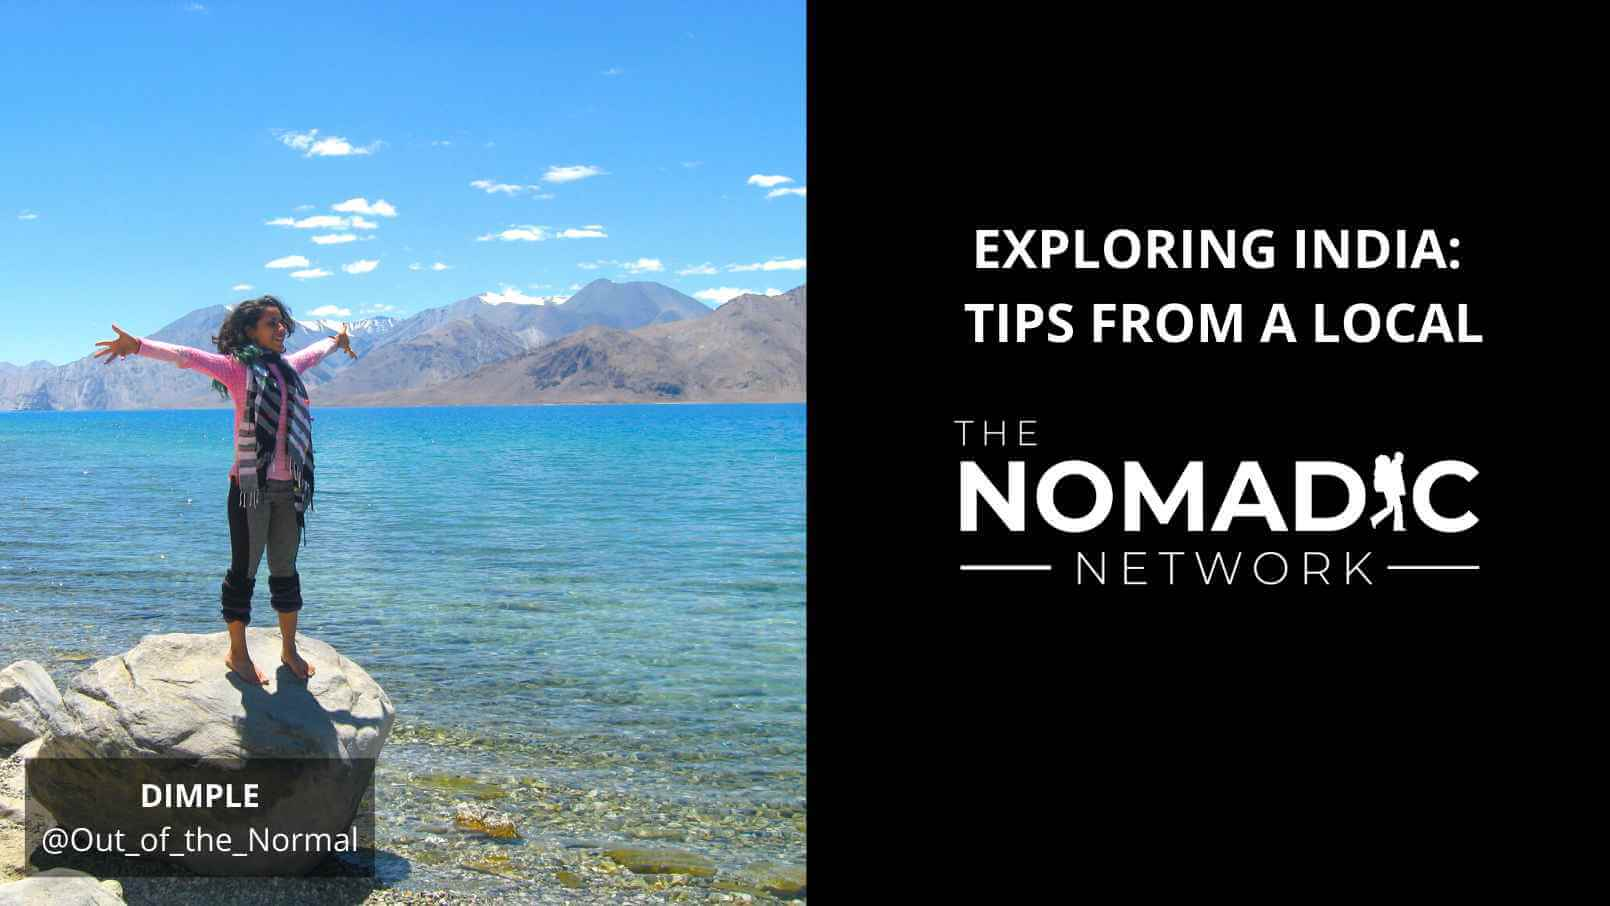 TNN speaker Dimple at Ladakh, India lake standing on a rock